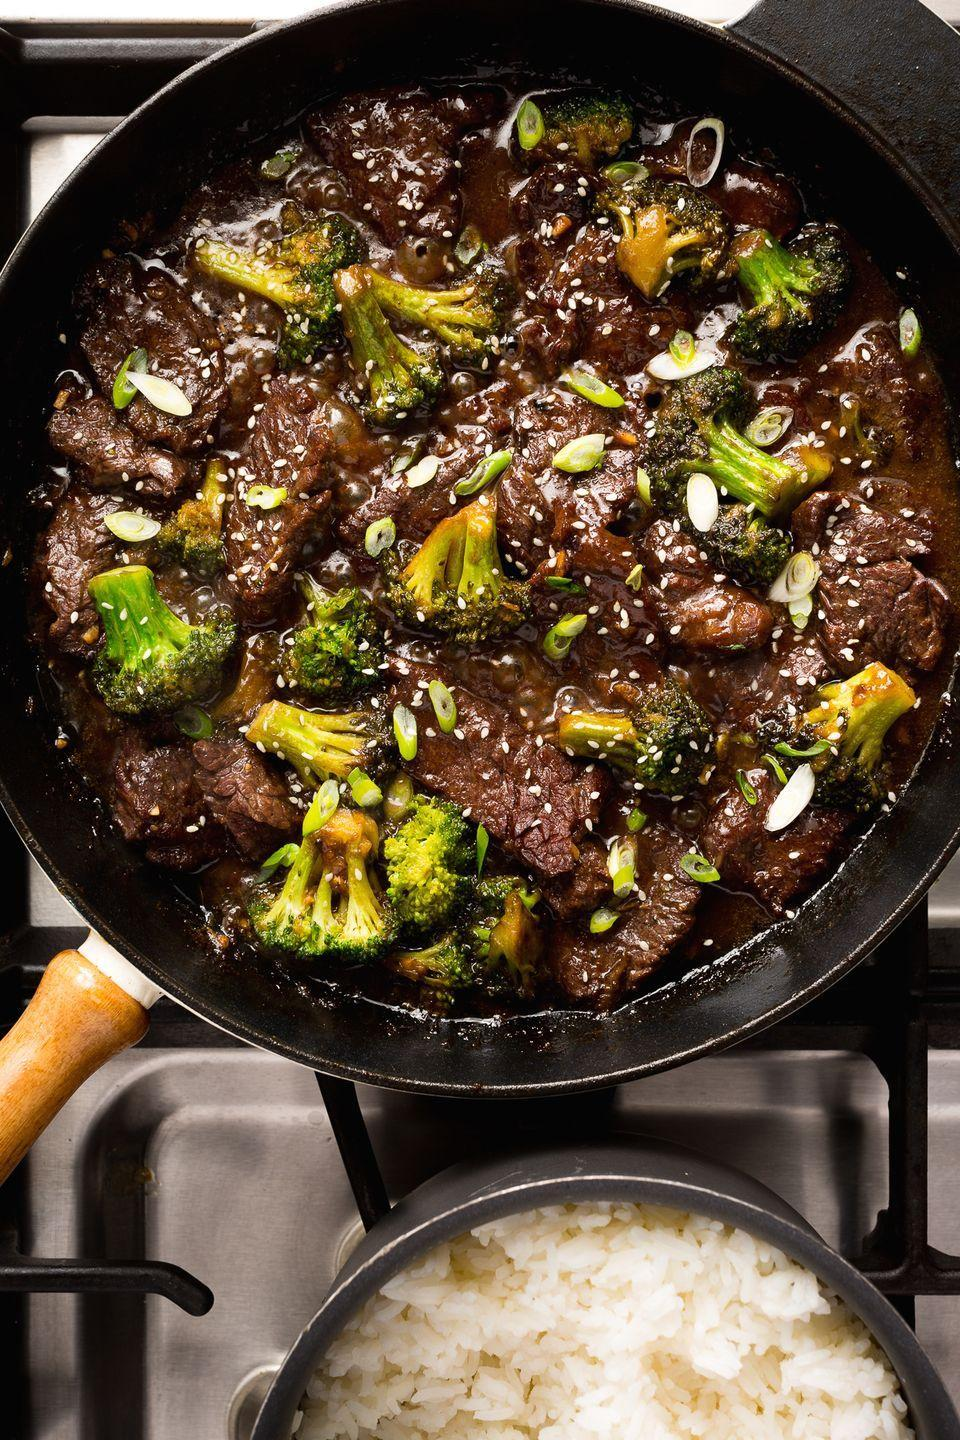 "<p>With an unbelievably delicious sauce, this beef and broccoli rivals the best takeout.</p><p>Get the recipe from <a href=""https://www.delish.com/cooking/recipe-ideas/recipes/a46827/beef-and-broccoli-stir-fry-recipe/"" rel=""nofollow noopener"" target=""_blank"" data-ylk=""slk:Delish"" class=""link rapid-noclick-resp"">Delish</a>.<br></p>"